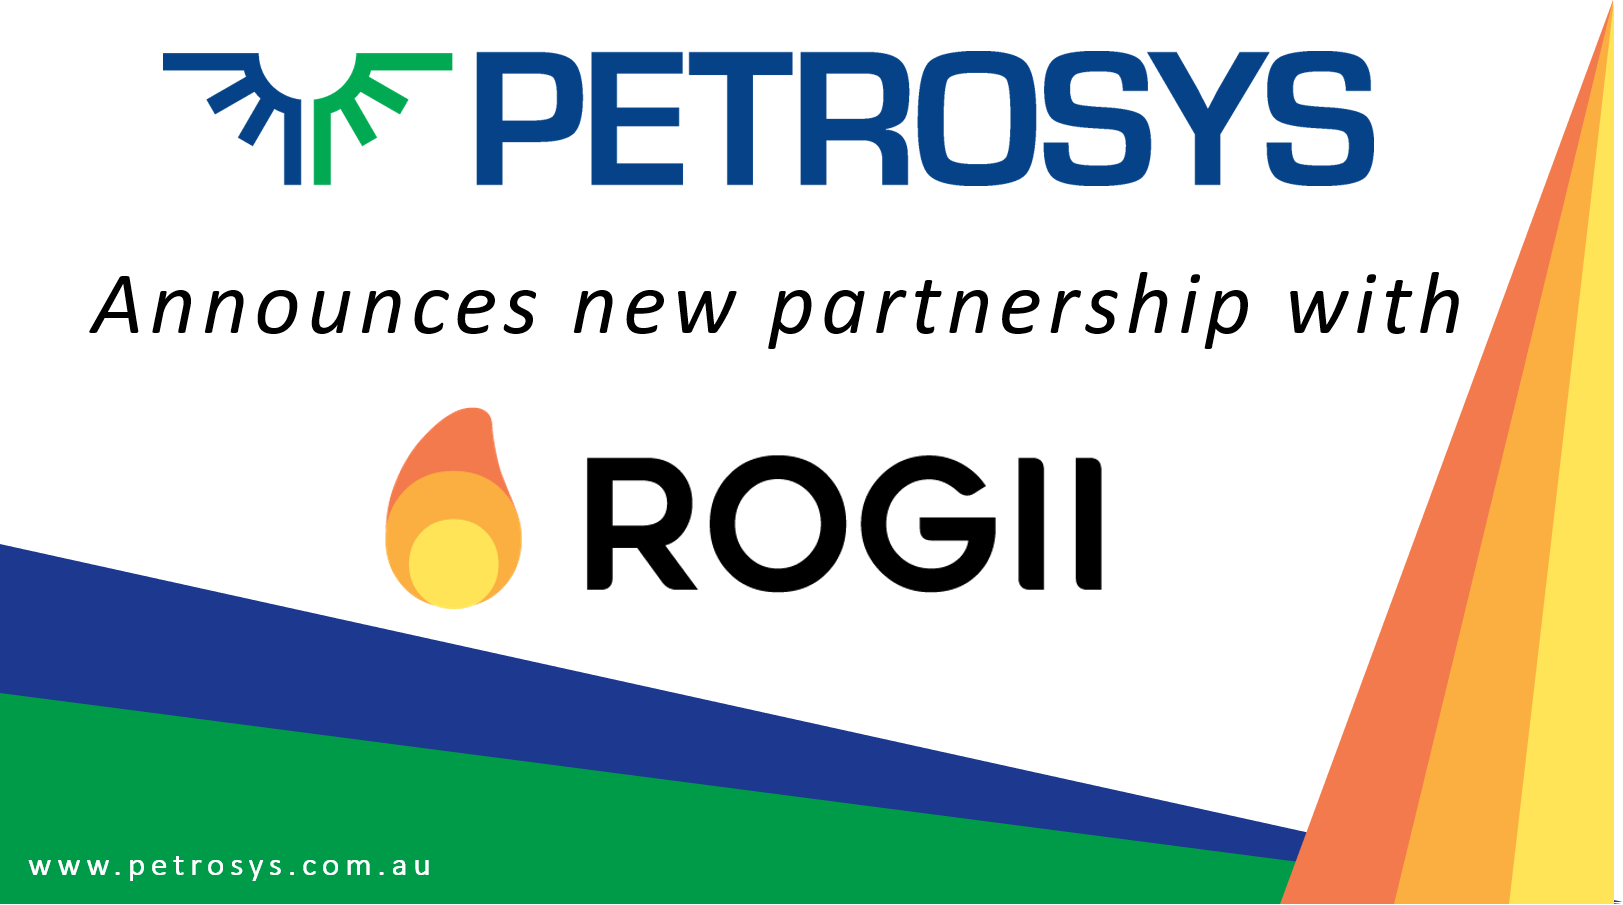 Petrosys announces partnership with ROGII